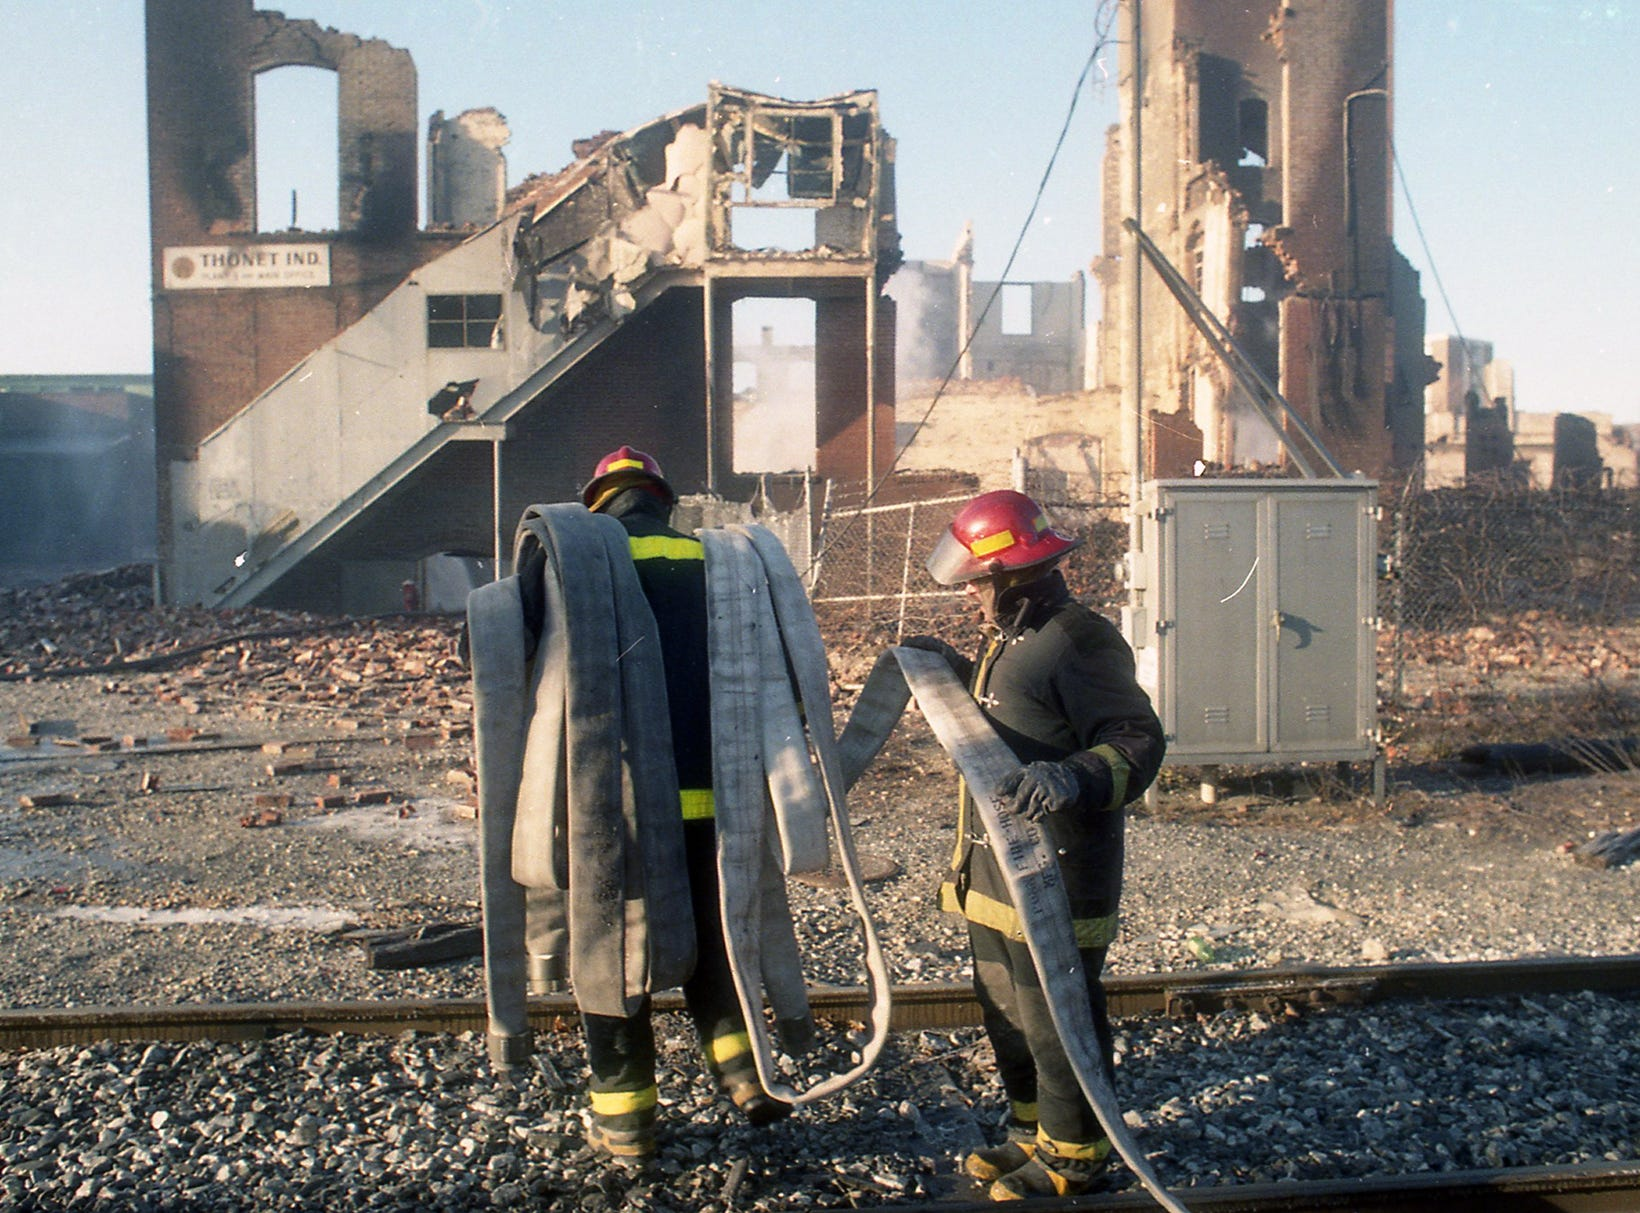 Firefighters collect hoses the morning after the Thonet fire. A fire began at the former Thonet Furniture plant at 491 East Princess Street in York on December 11, 1993. Eventually, the four alarm fire spread through the complex of buildings and several other properties.